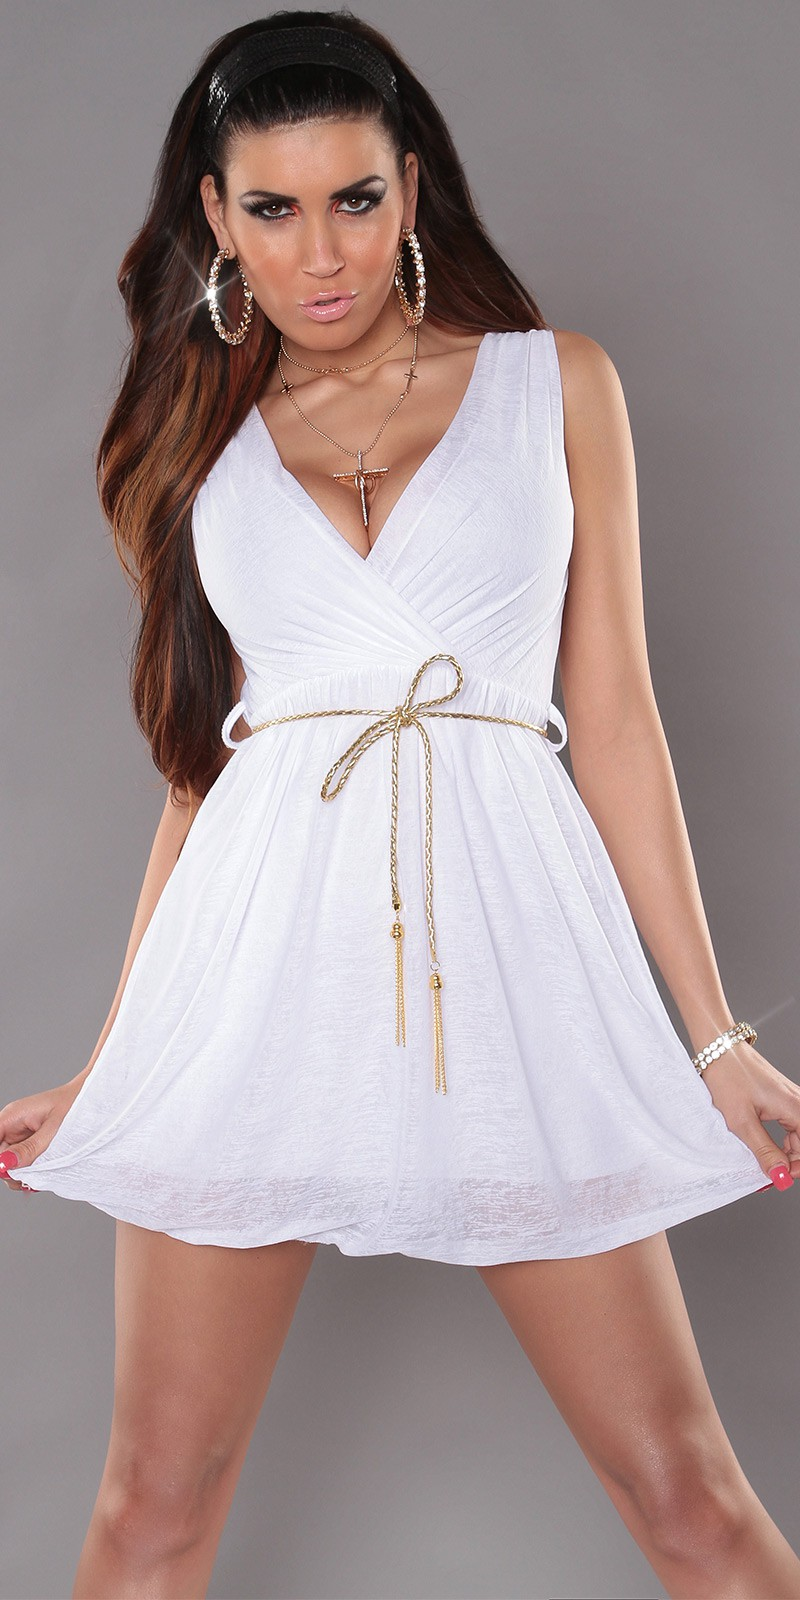 White Sexy KouCla Minidress With V-Neck Snd Belt